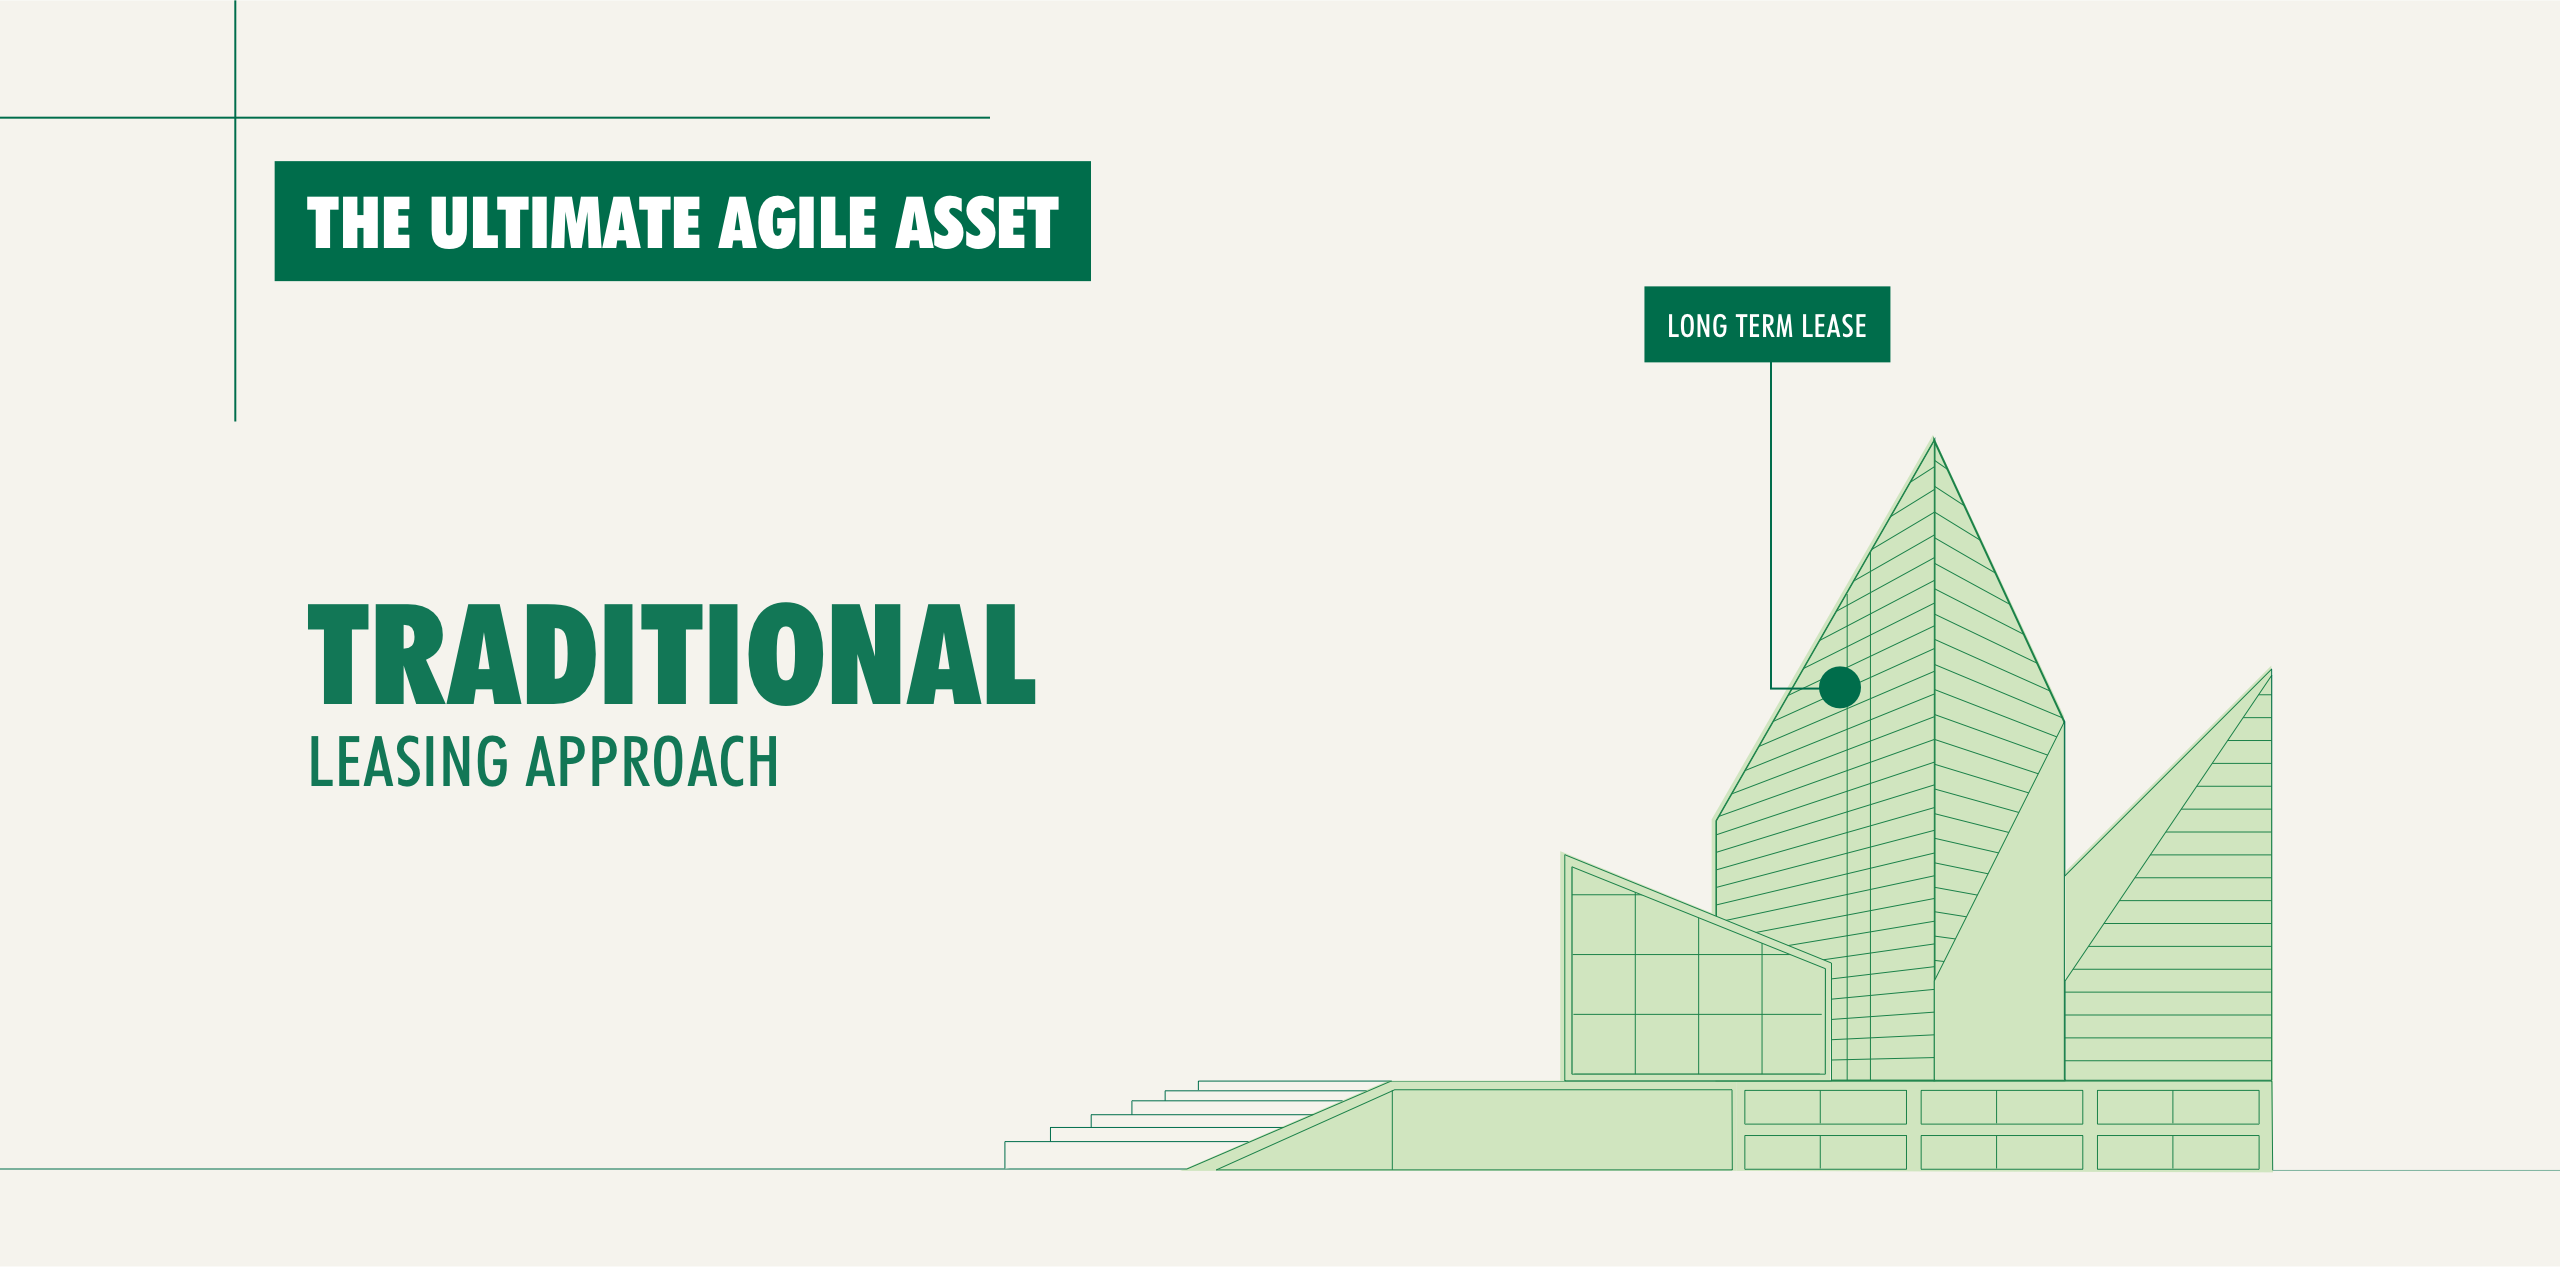 The Agile Advantage | CBRE